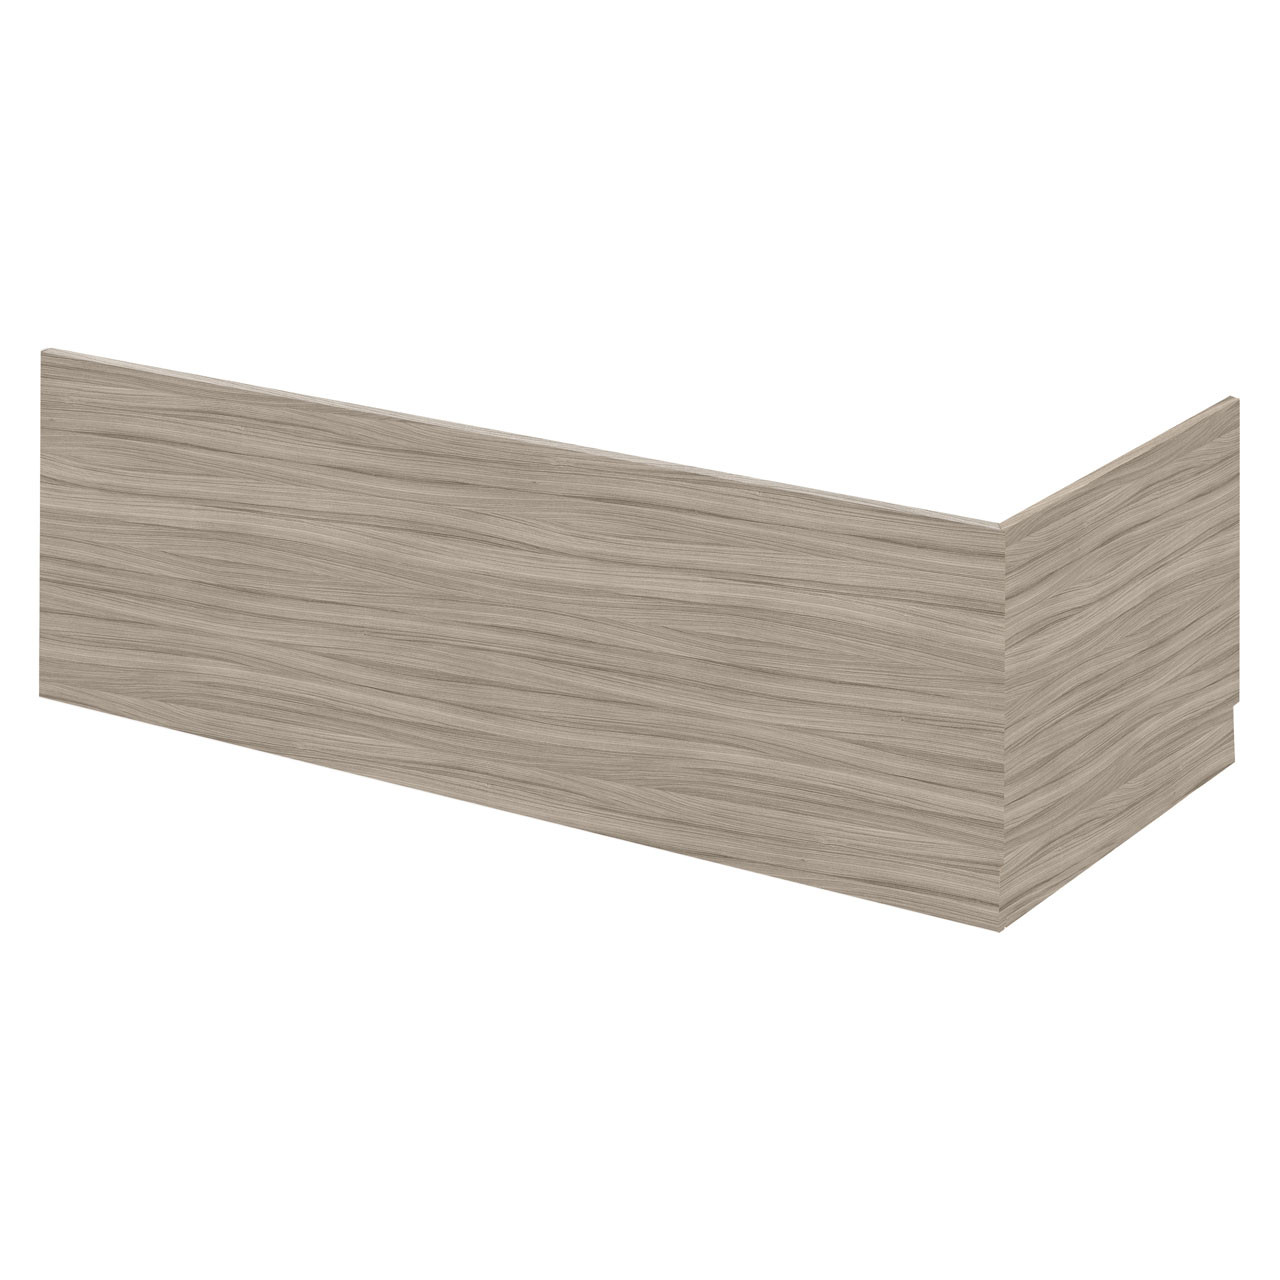 Nuie Athena Driftwood 1700mm Front Bath Panel - MPC105